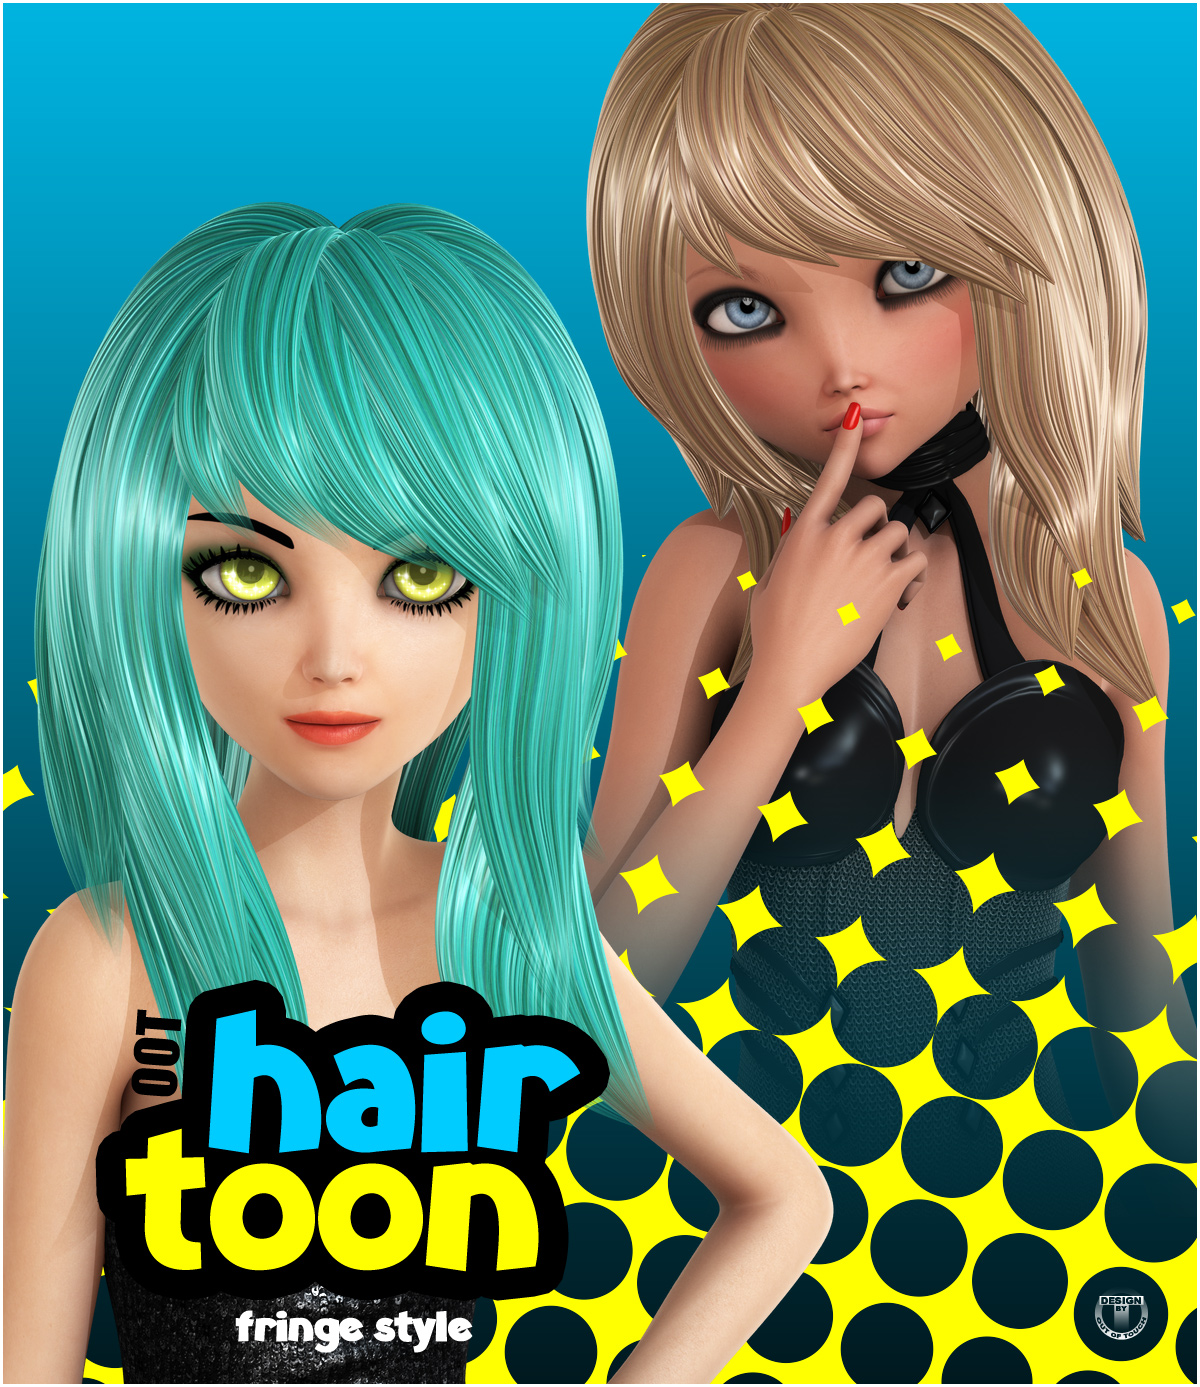 OOT Toon Hair: Fringe Style for Genesis 2 Female(s)byoutoftouch()